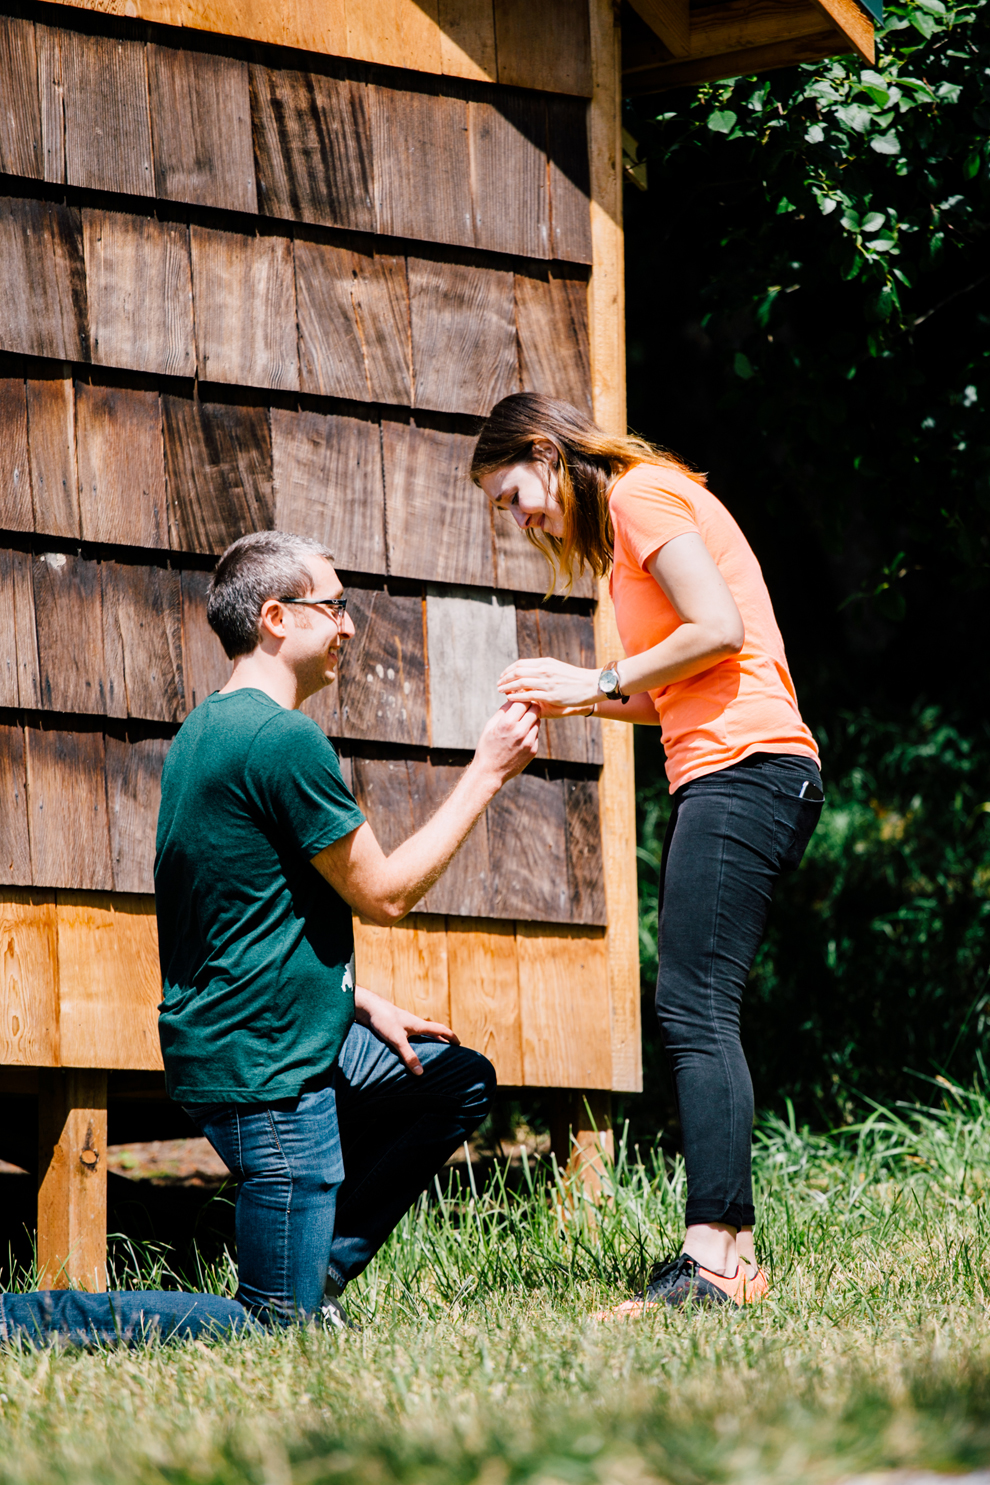 010-orcas-island-engagement-proposal-camp-orkila-katheryn-moran-photography.jpg